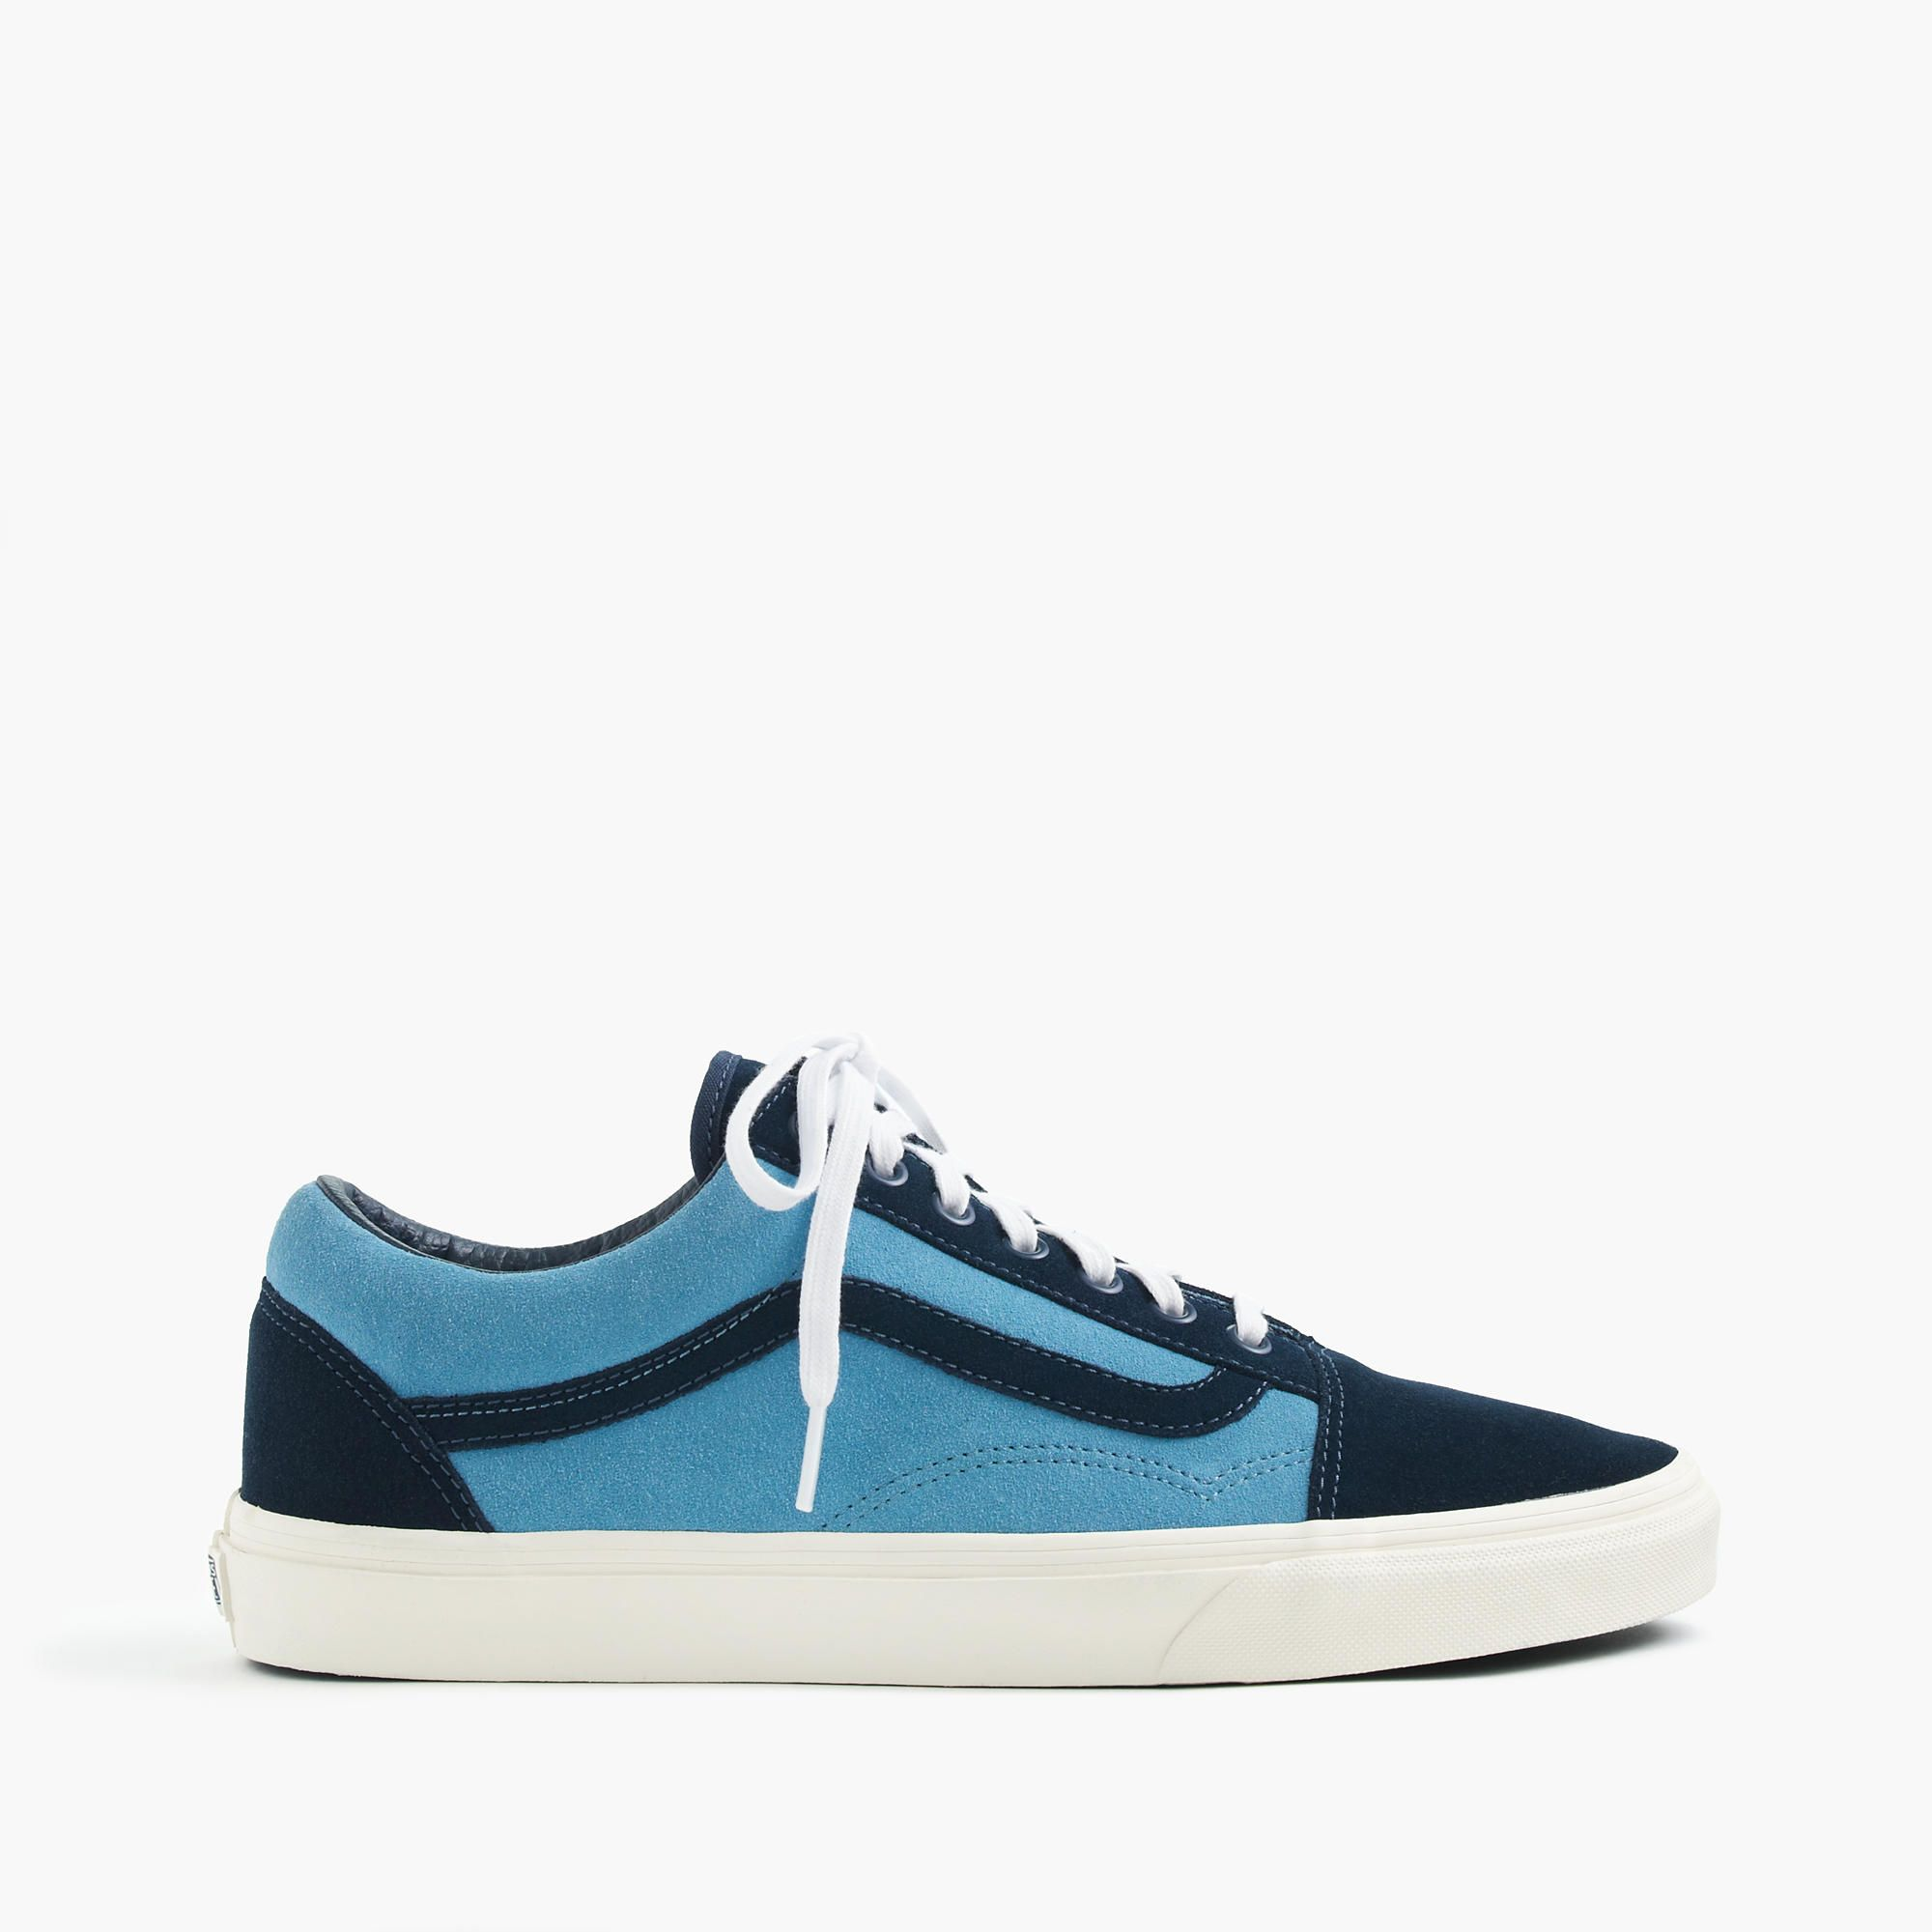 Vans® for J.Crew Old Skool sneakers in suede    3451703931